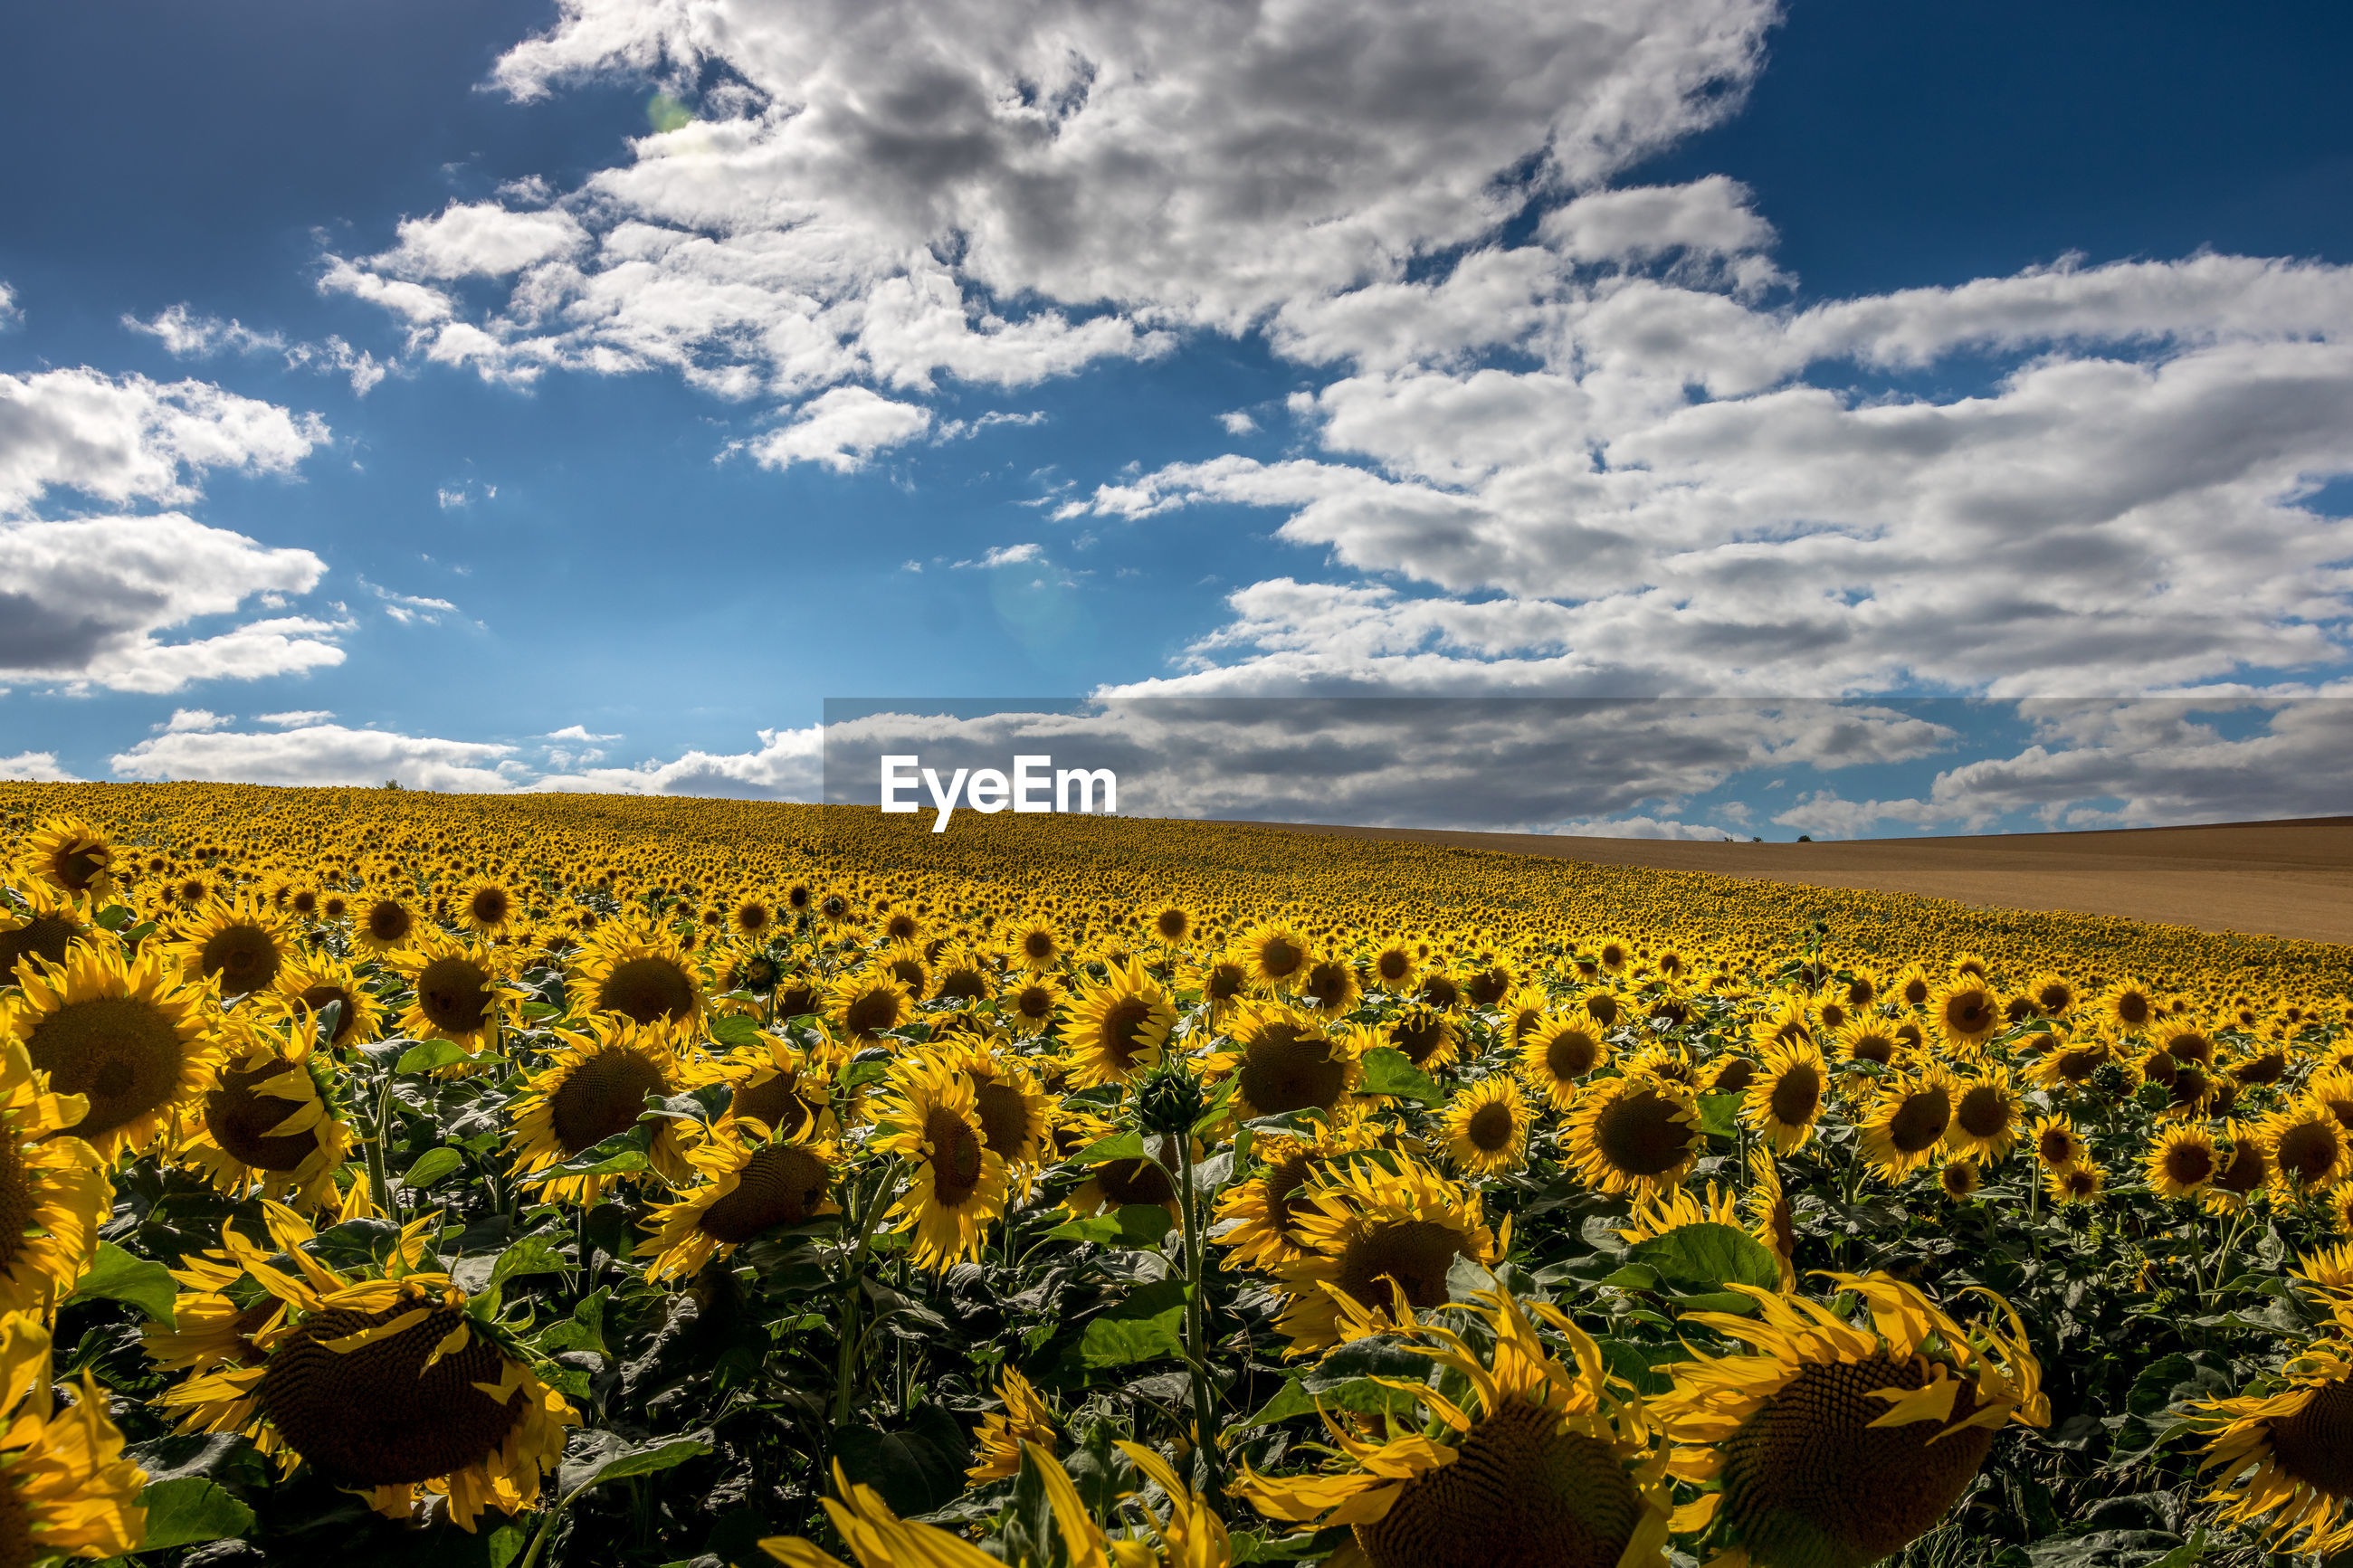 SCENIC VIEW OF SUNFLOWER FIELD AGAINST CLOUDY SKY DURING SUNSET